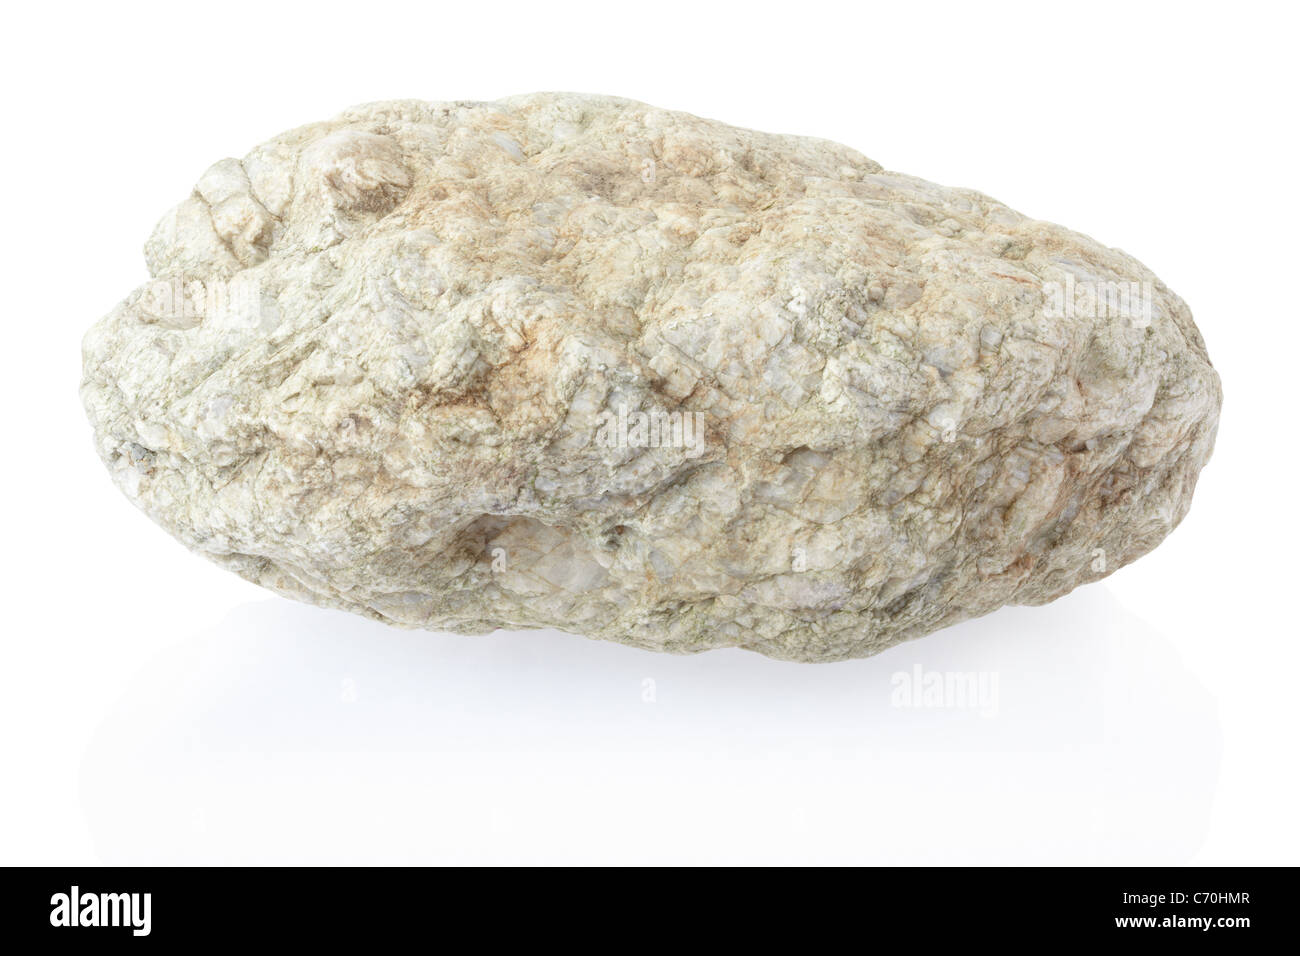 Stone, rock - Stock Image